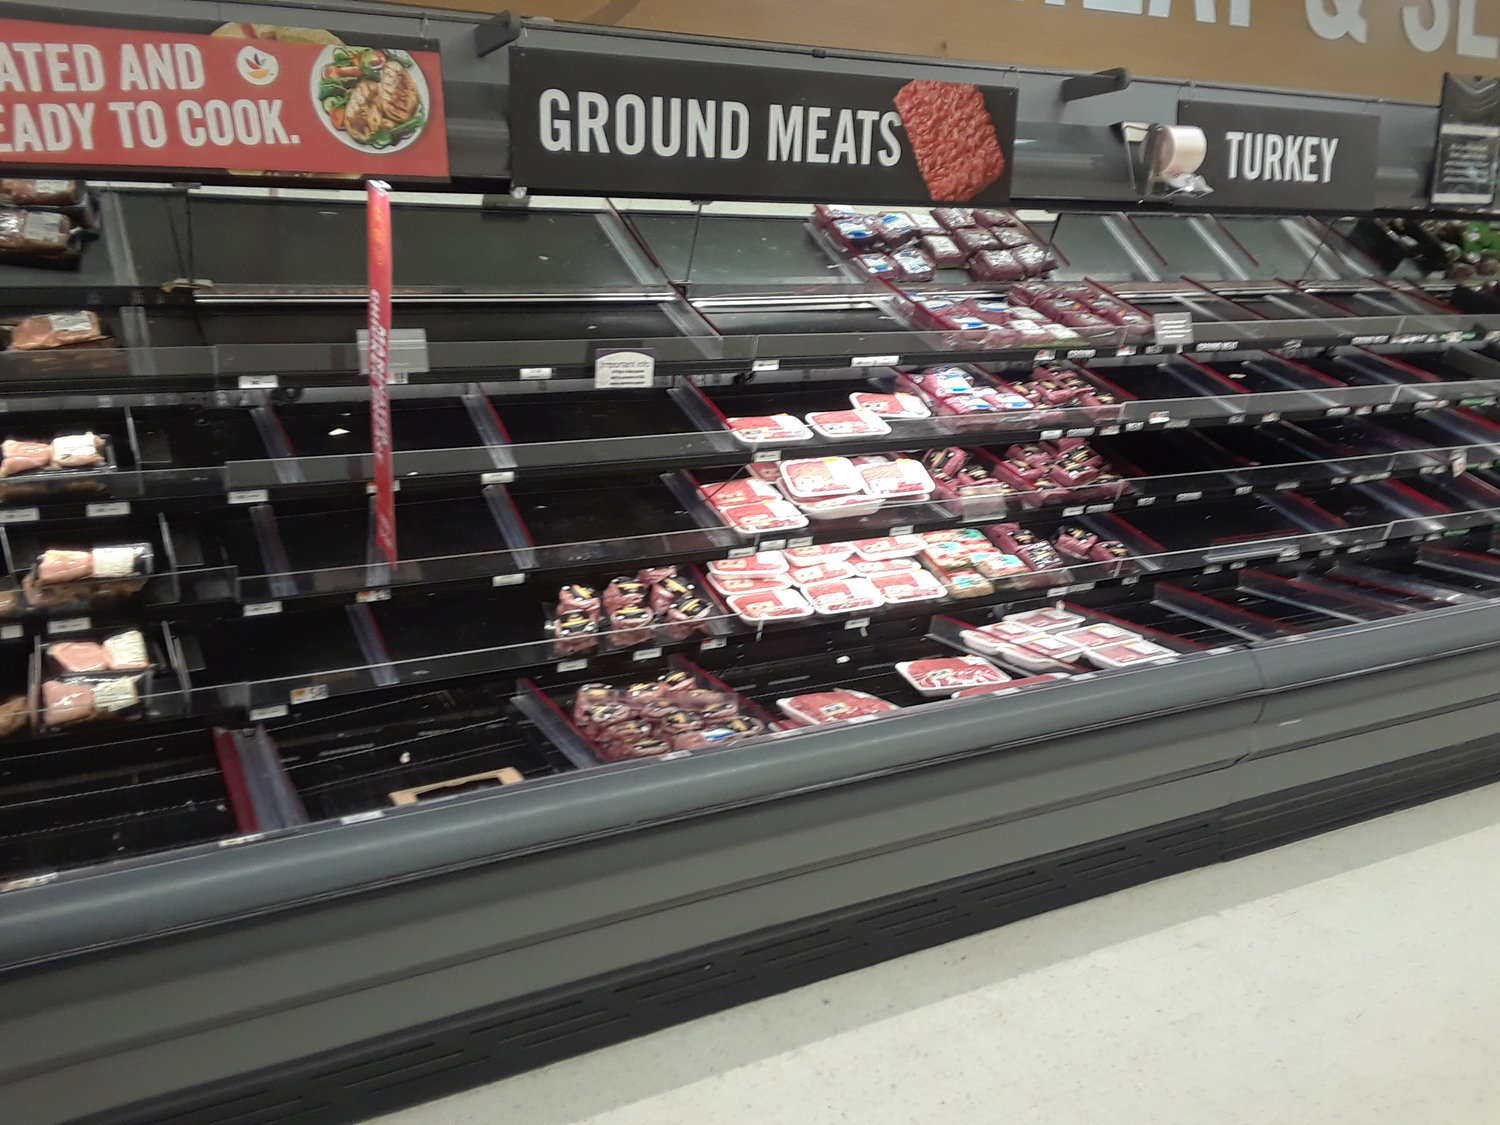 One supermarket executive recommended waiting to see what cuts of meat were available before making a menu for the week.